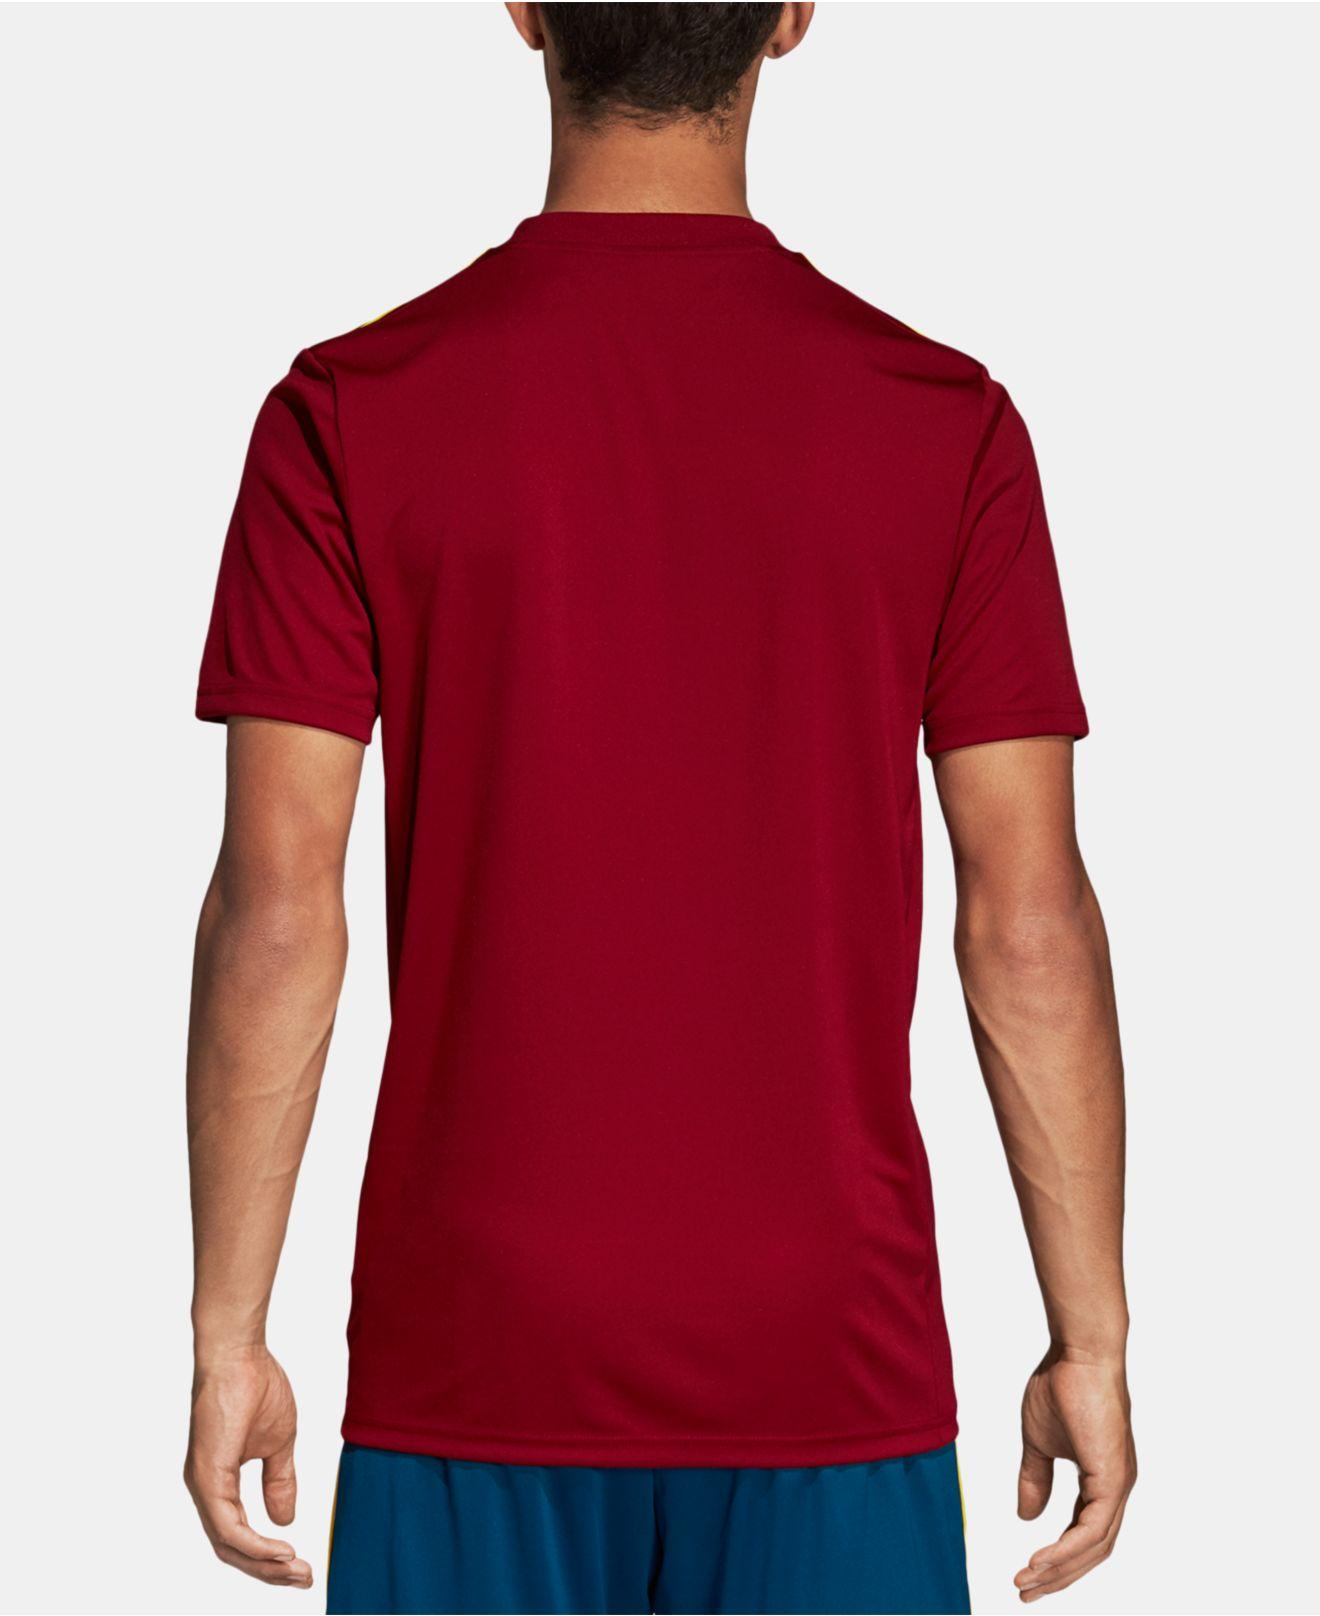 037b1c8f11d Lyst - adidas Striped Soccer Jersey in Red for Men